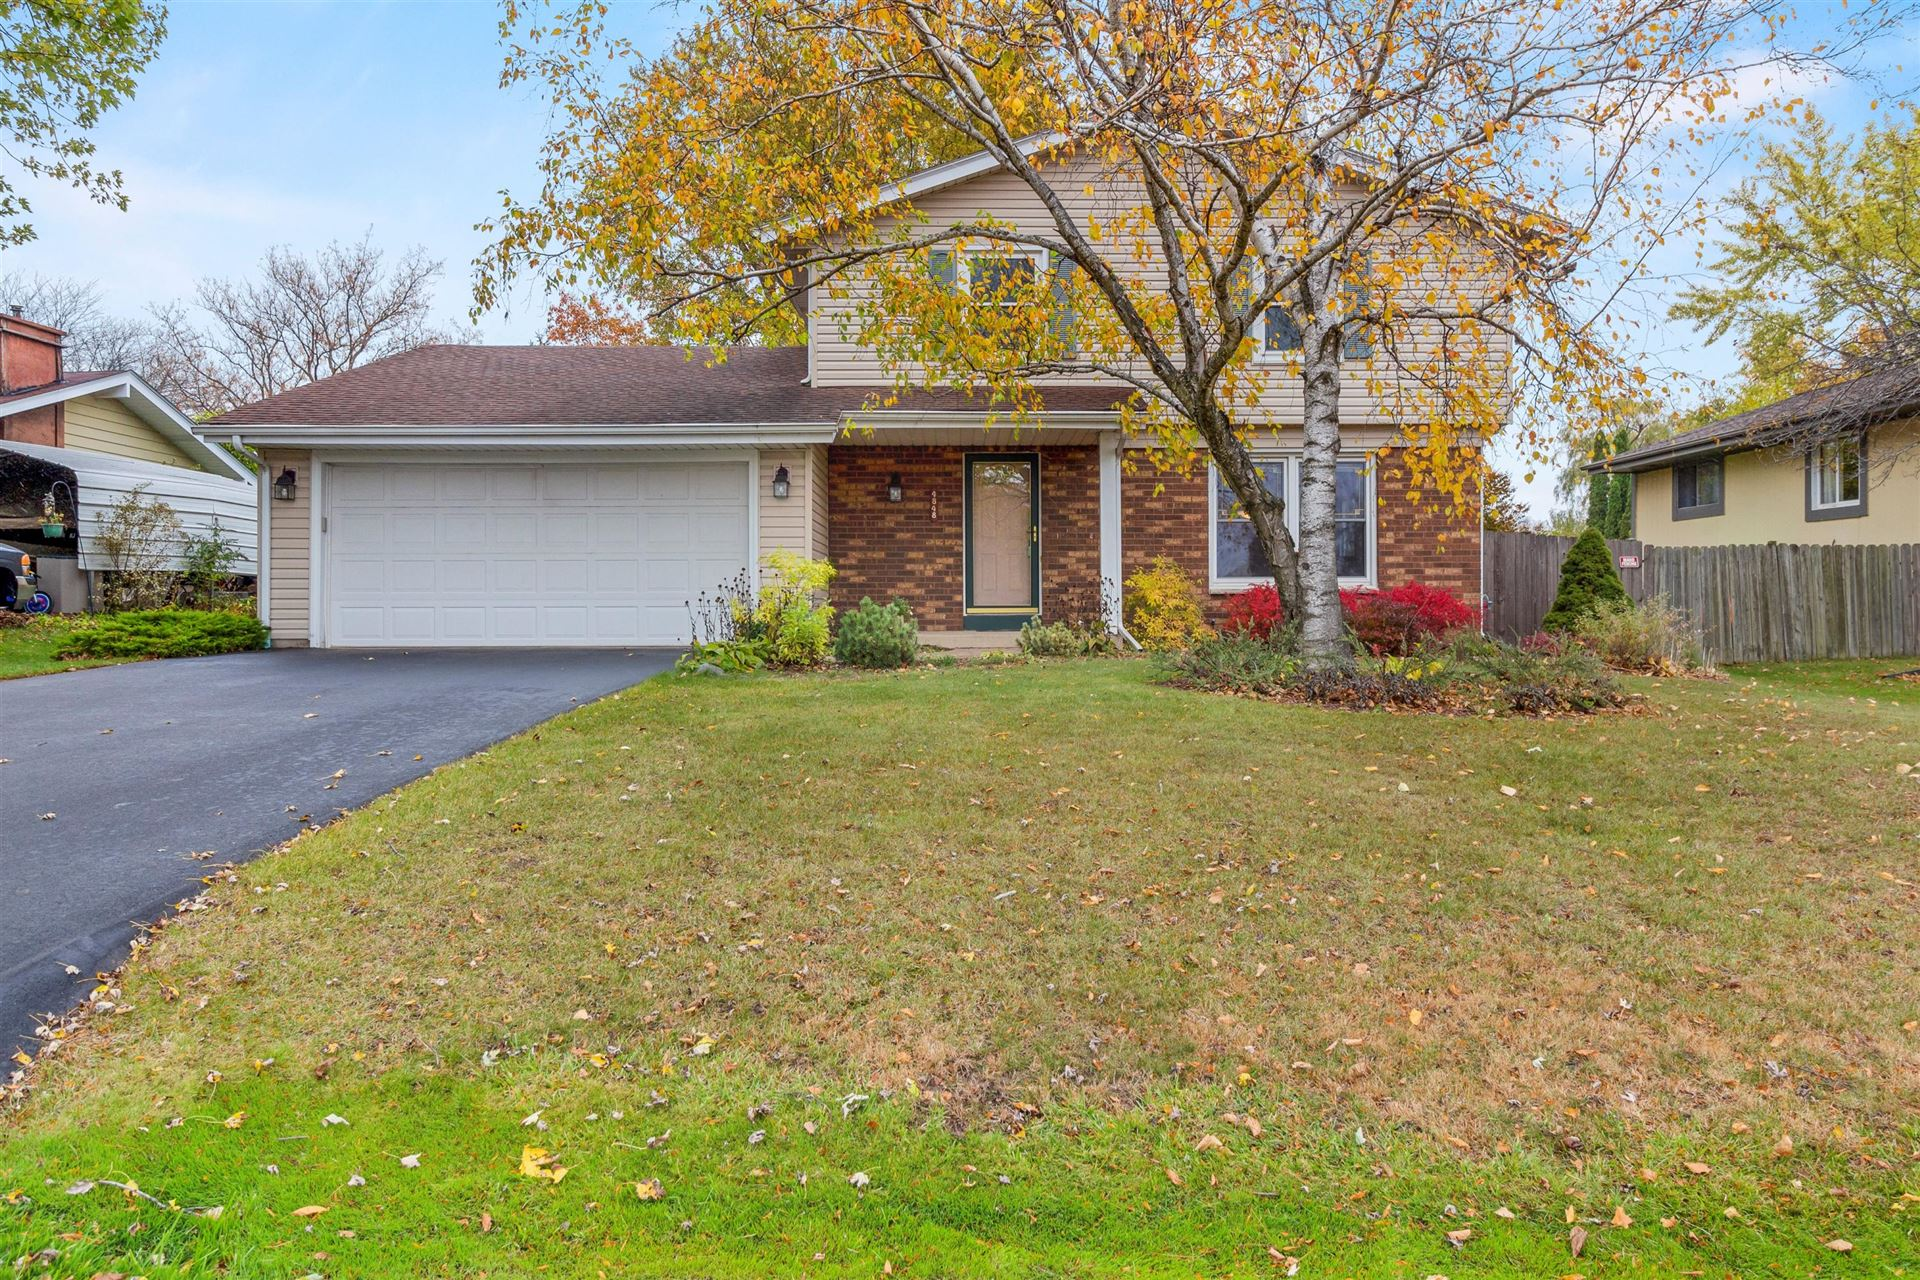 4848 High Meadows Ter, Mount Pleasant, WI 53406 - #: 1716542